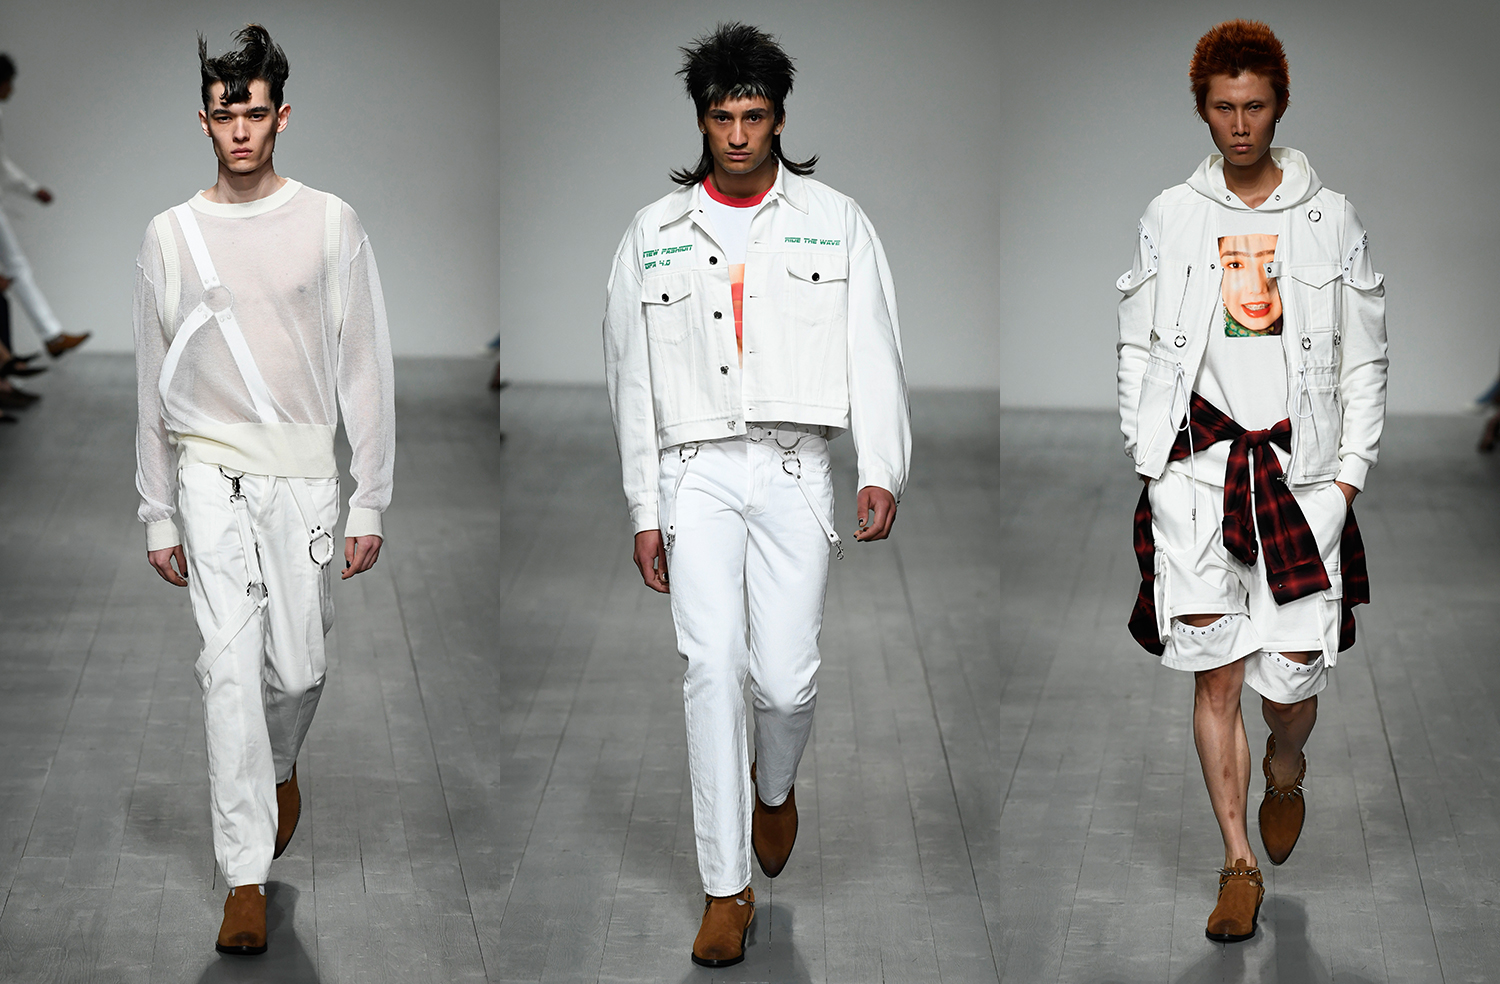 Private Policy Spring Summer 2019, LFWM SS19, London Fashion Week Men's